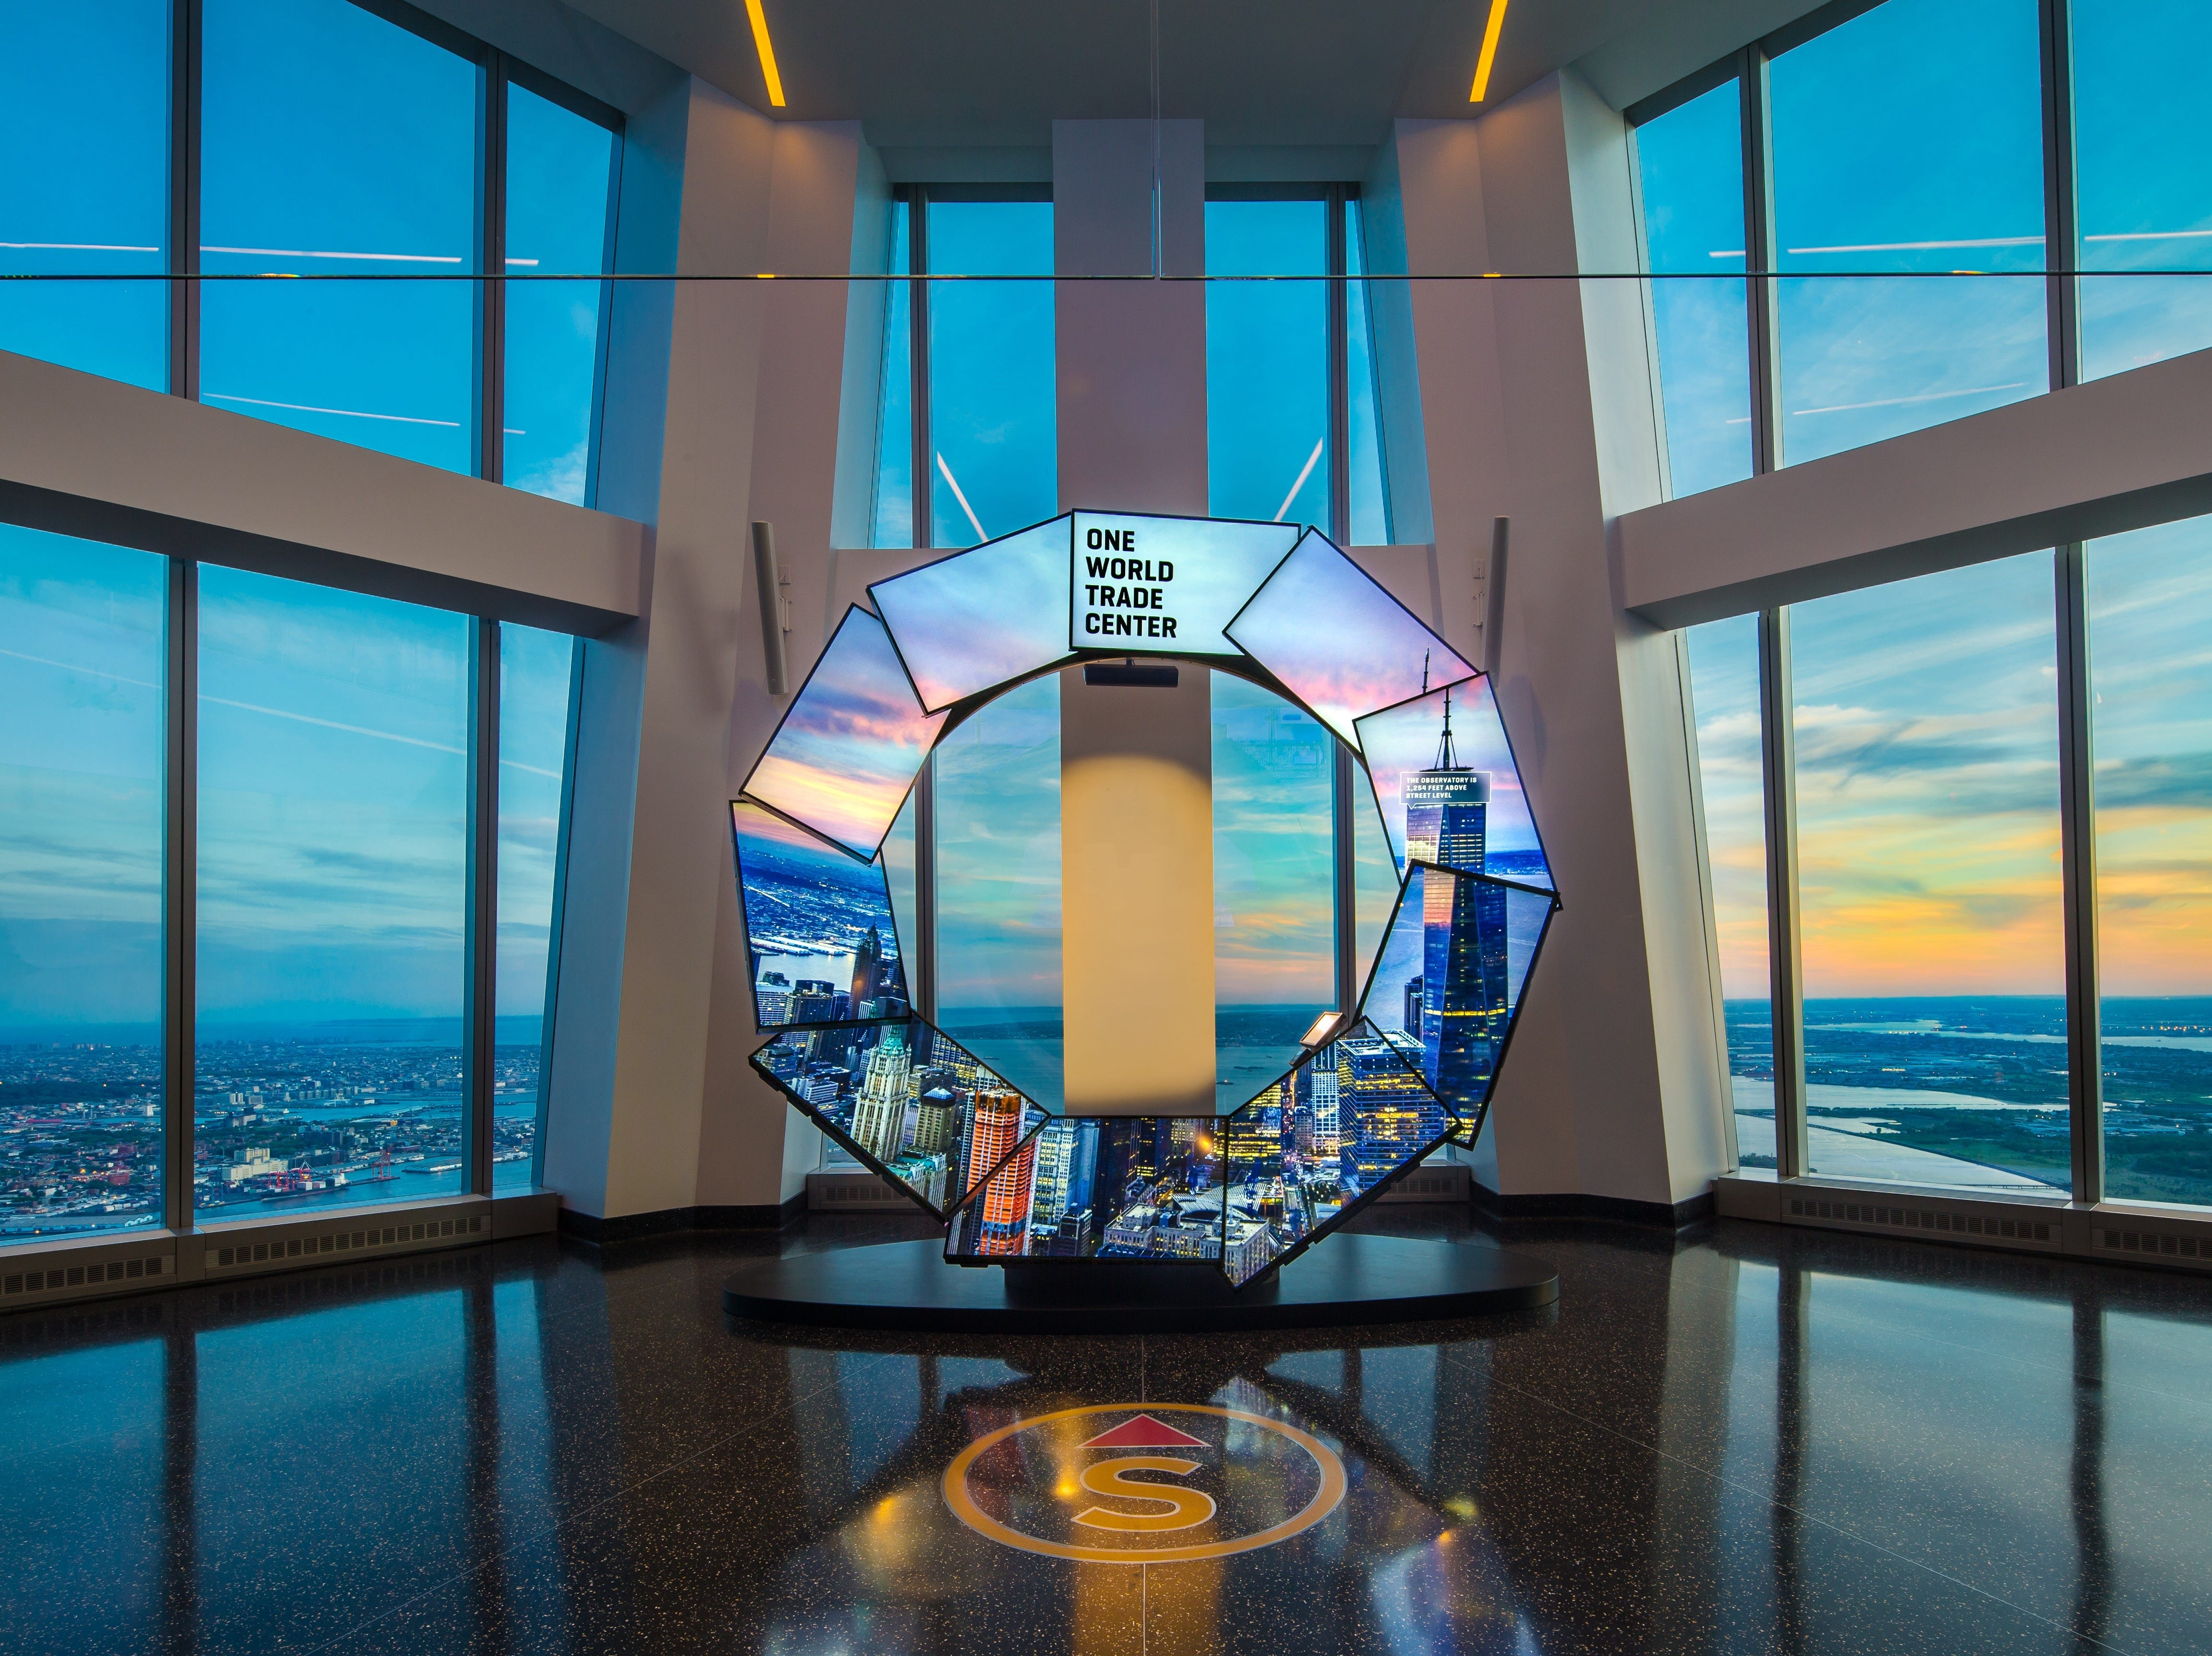 The animated feature known as City Pulse, at dusk at One World Observatory.